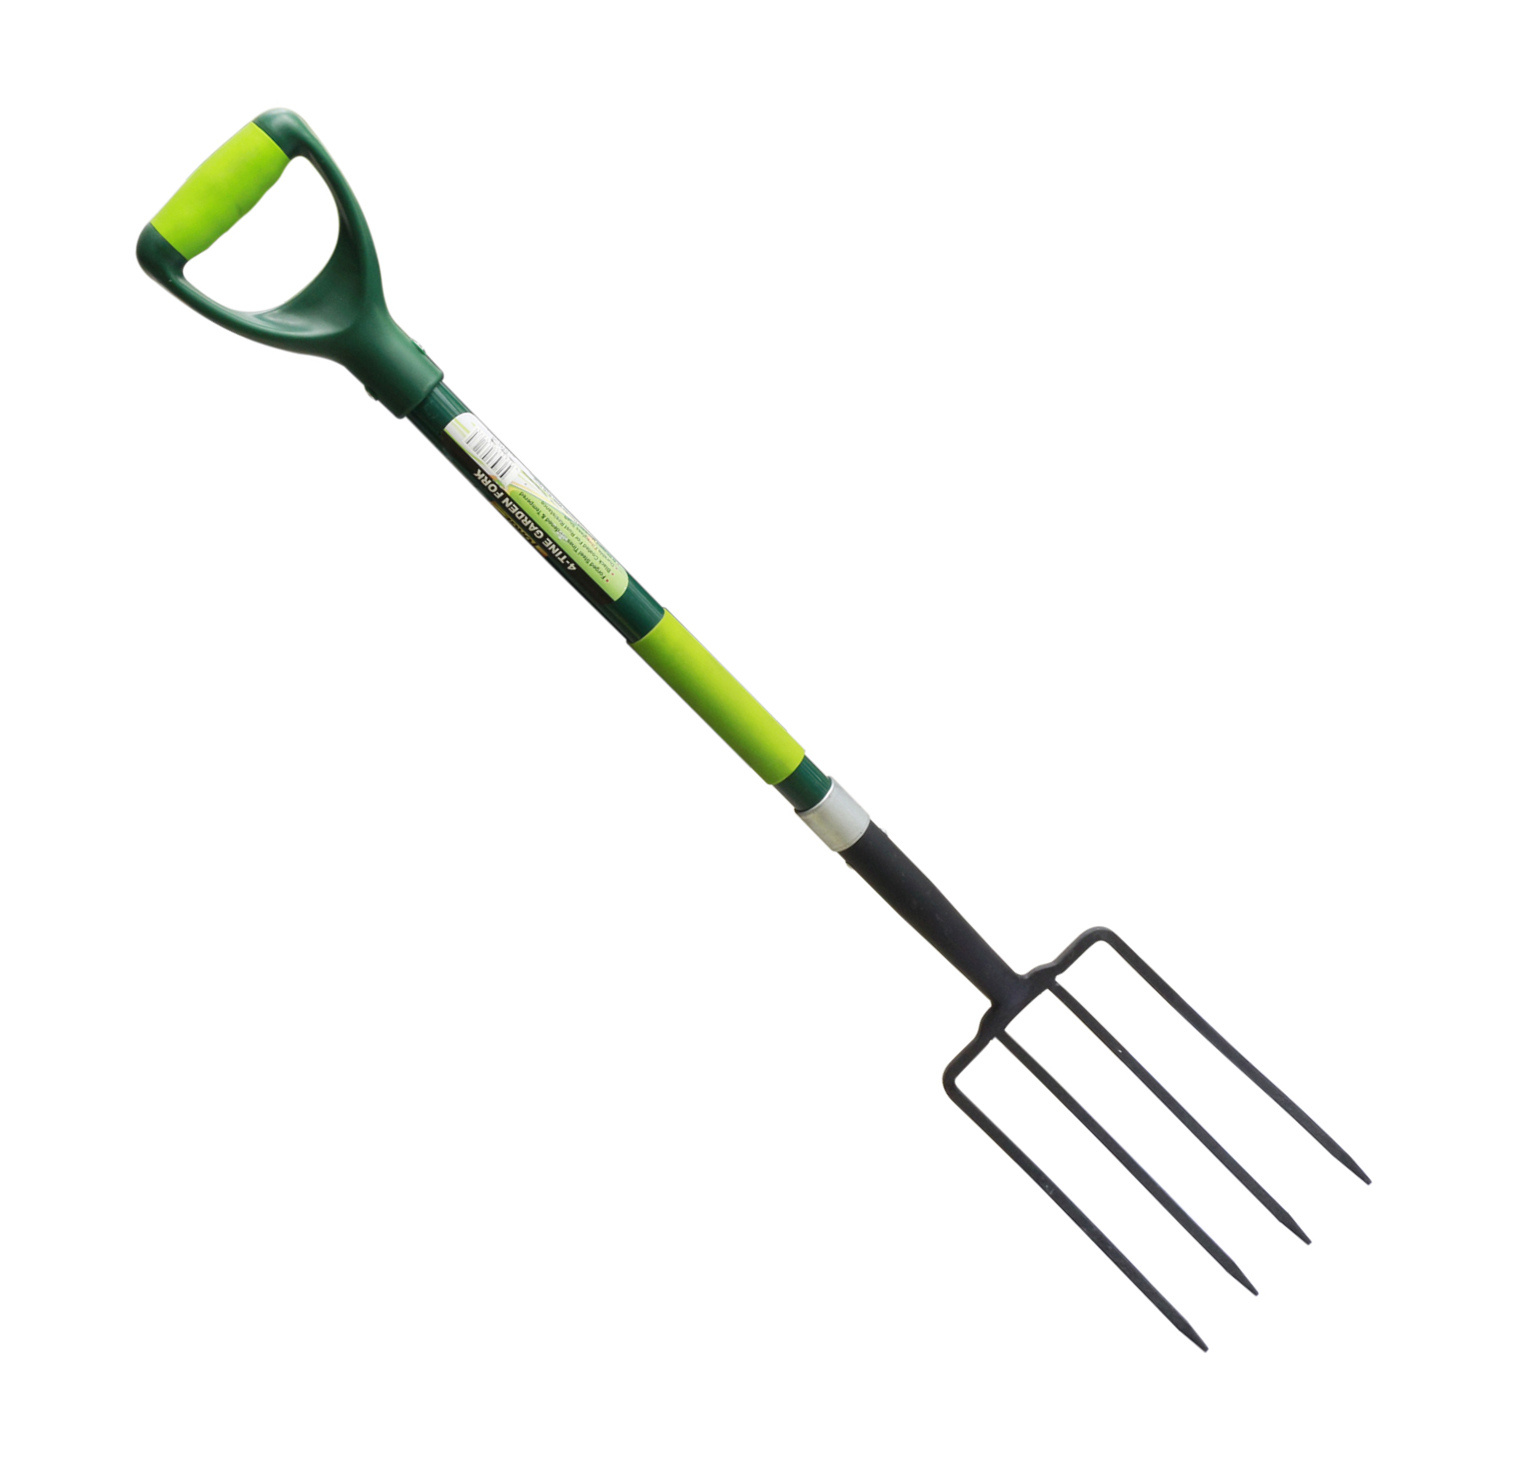 Garden Tools High Carbon Steel 4-Tine Garden Fork Pitchfork with Fibreglass Handle